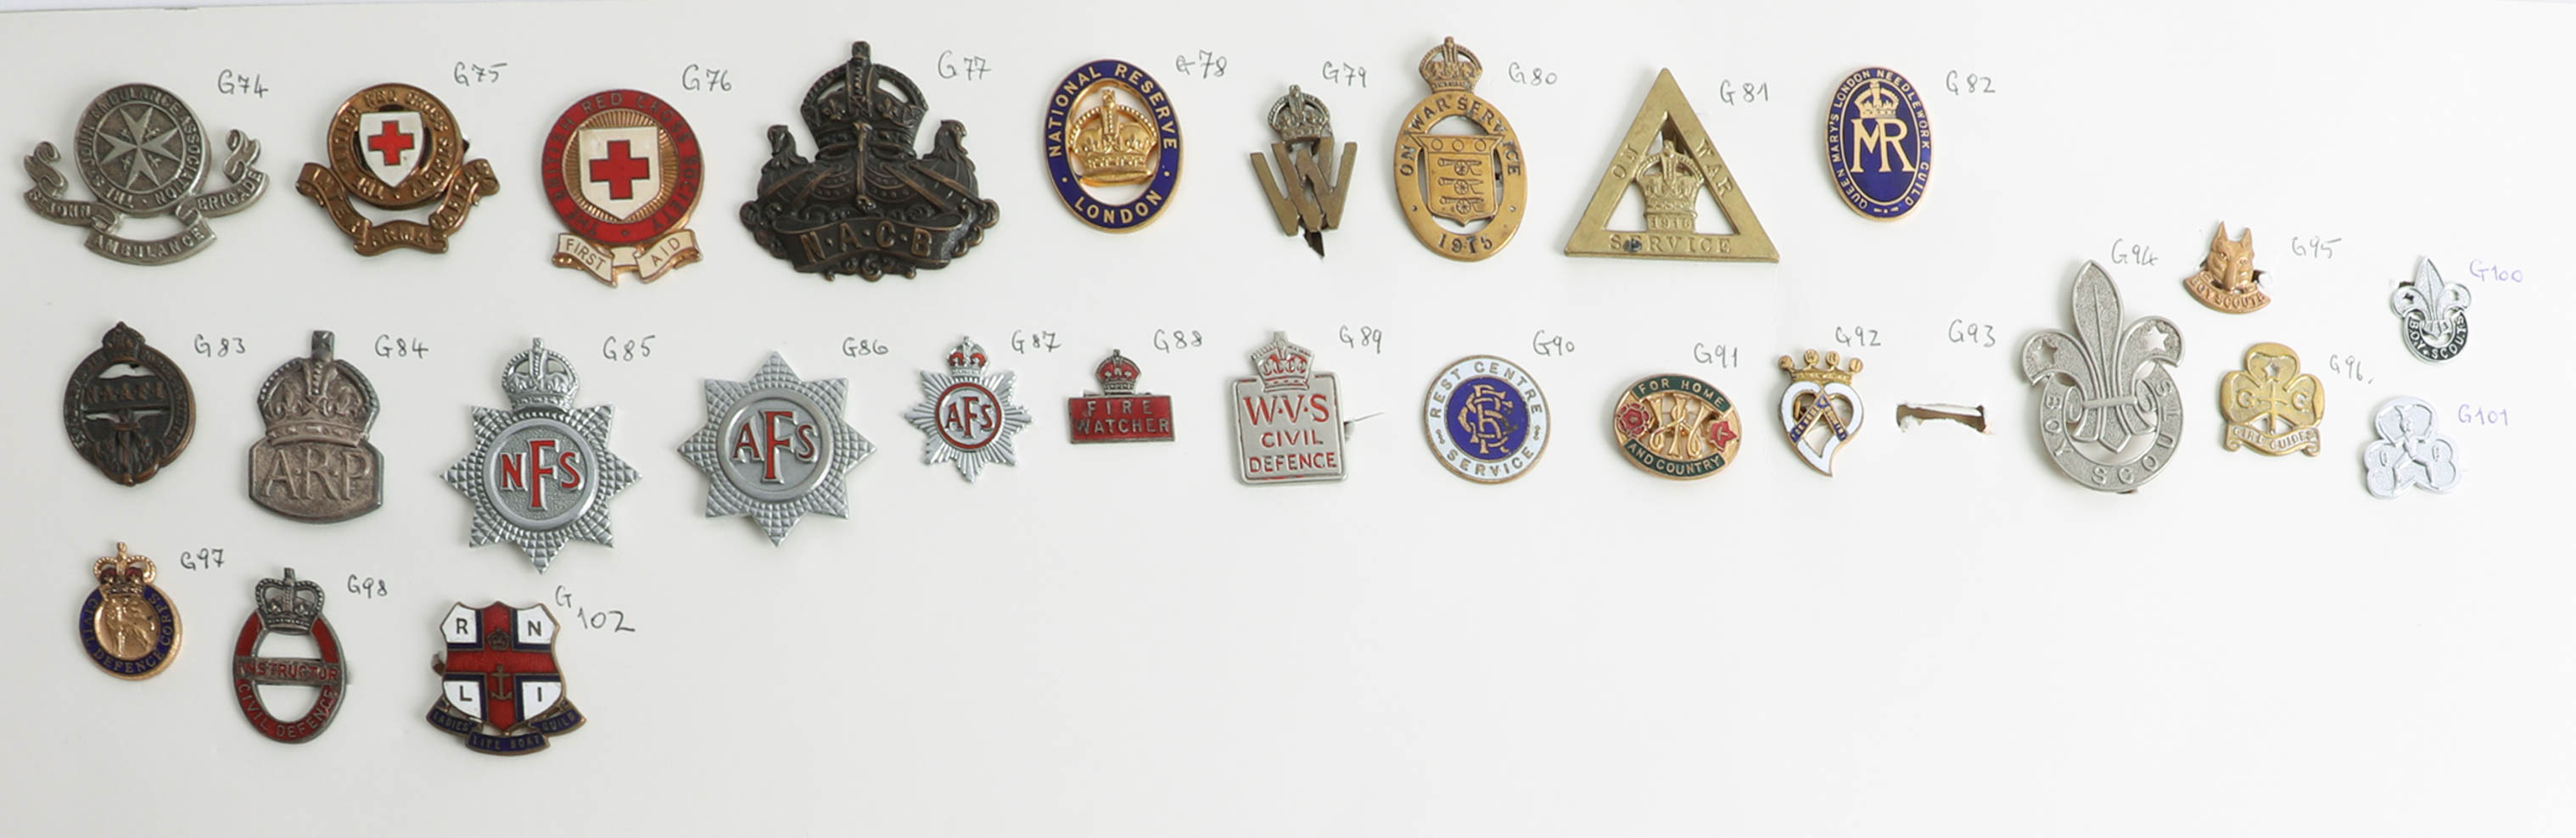 Lot 007 - A collection of approx. 100 military cap and other badges displayed on two sheets including WWII